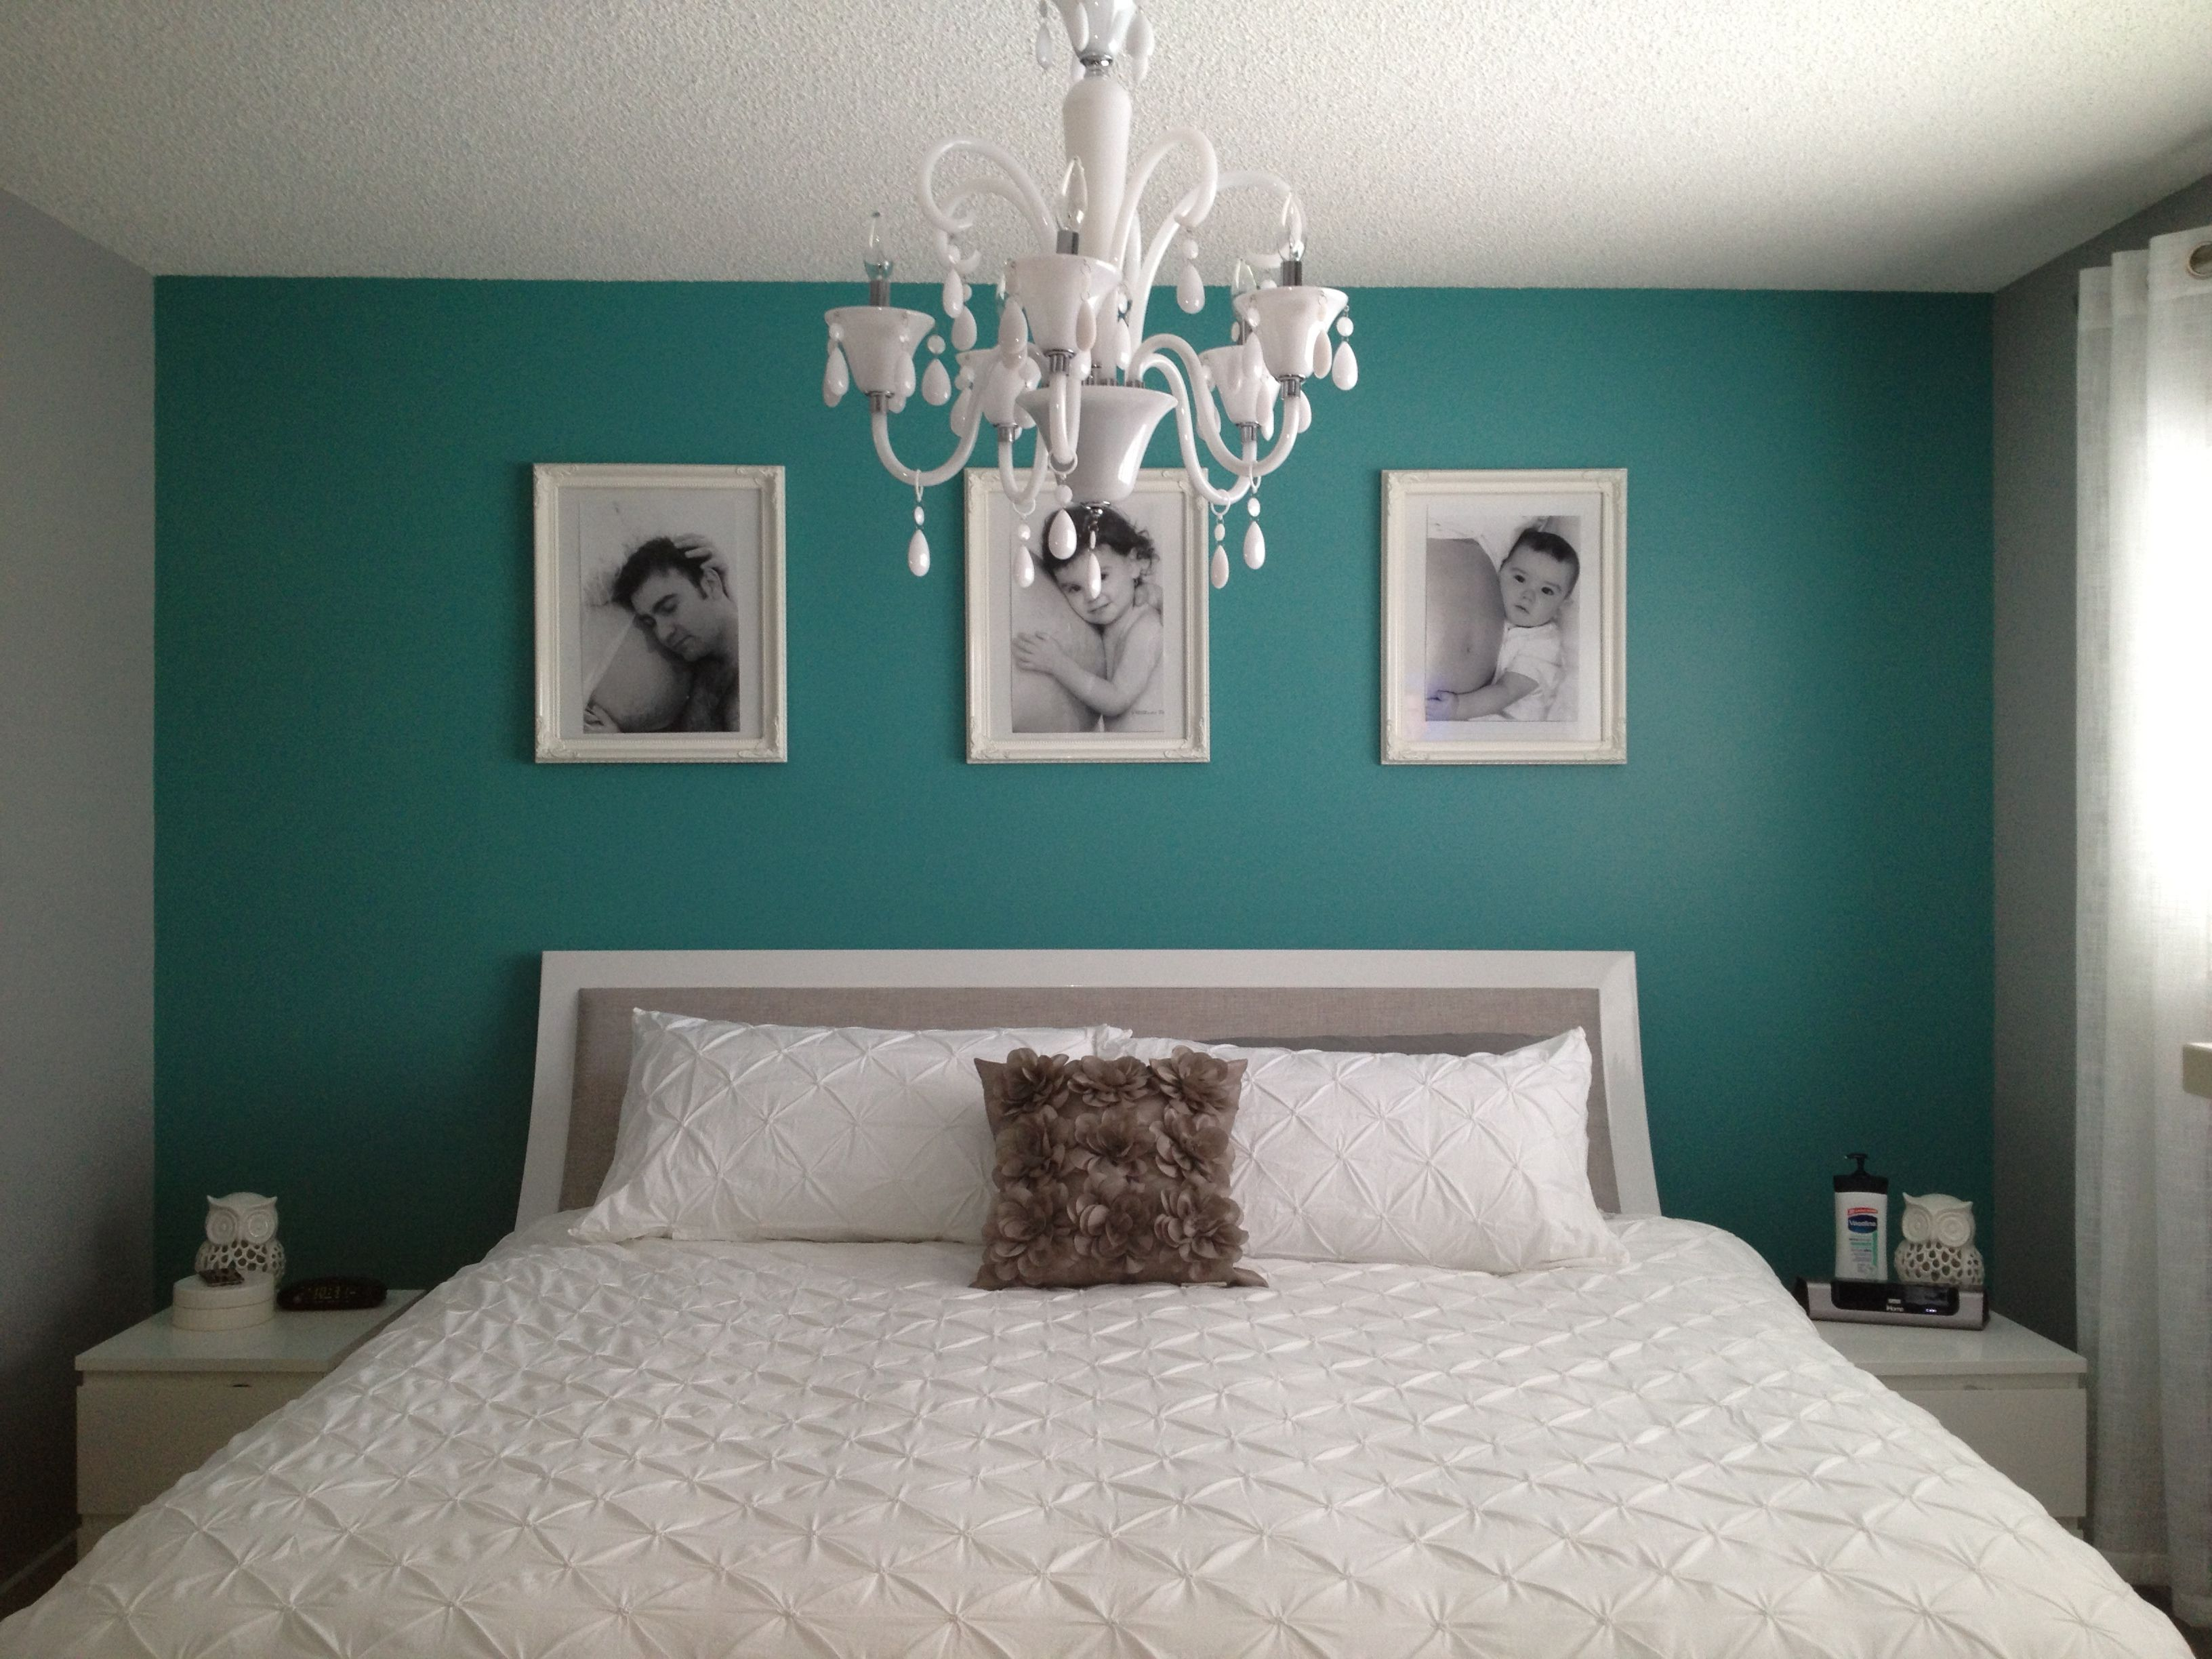 Teal Pictures Bedroom Grey And Teal Bedroom Love This Room So Much So That I Am Going